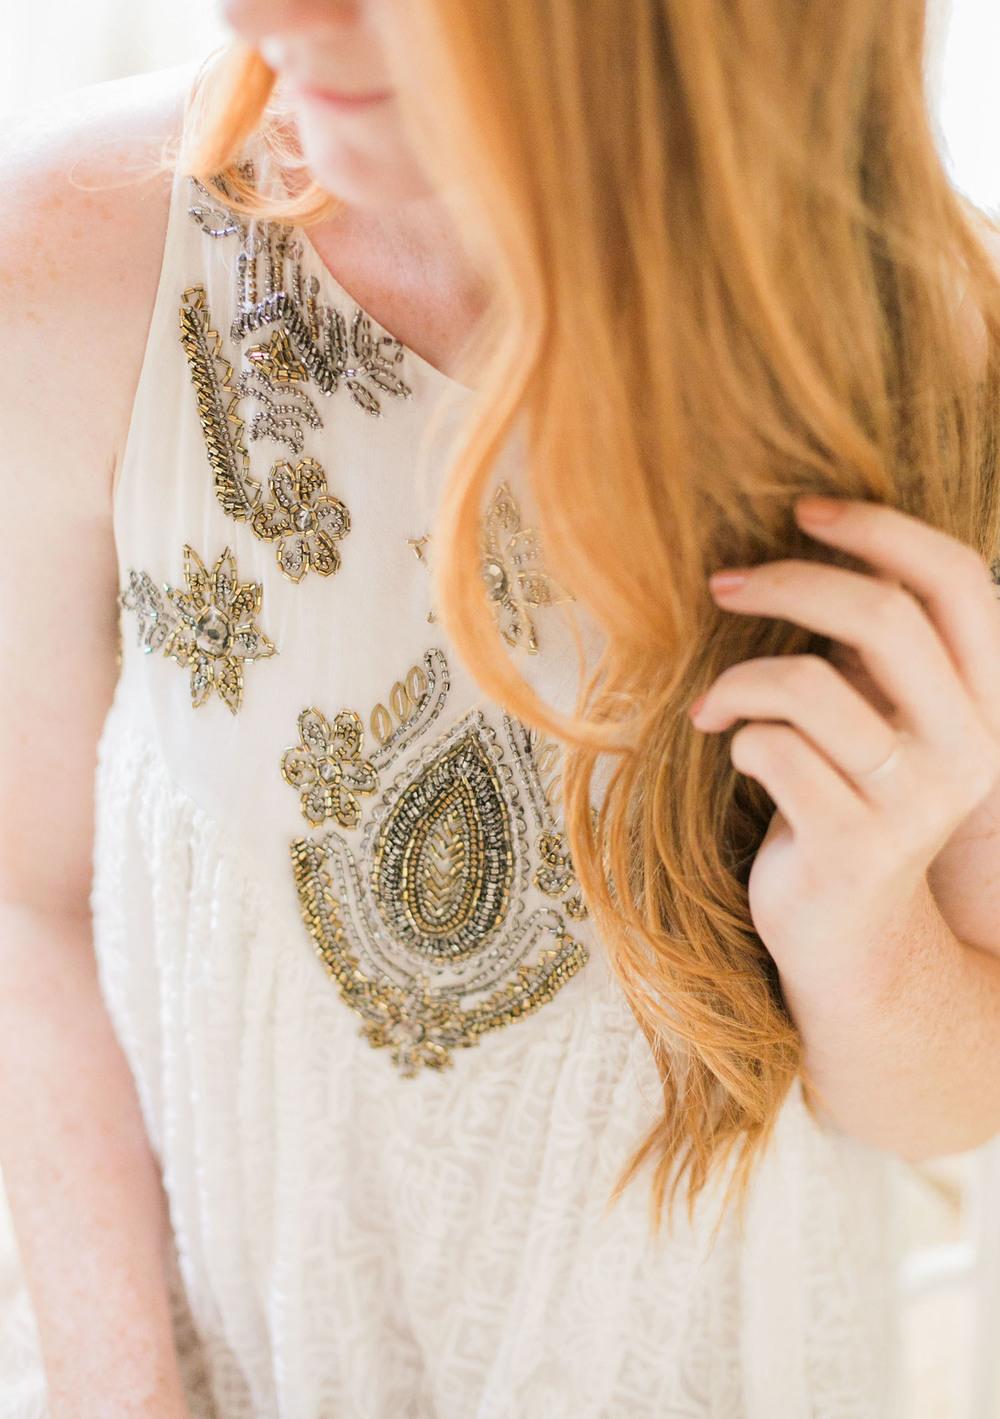 Beaded BHLDN dress for an easy rehearsal dinner look | A Fabulous Fete